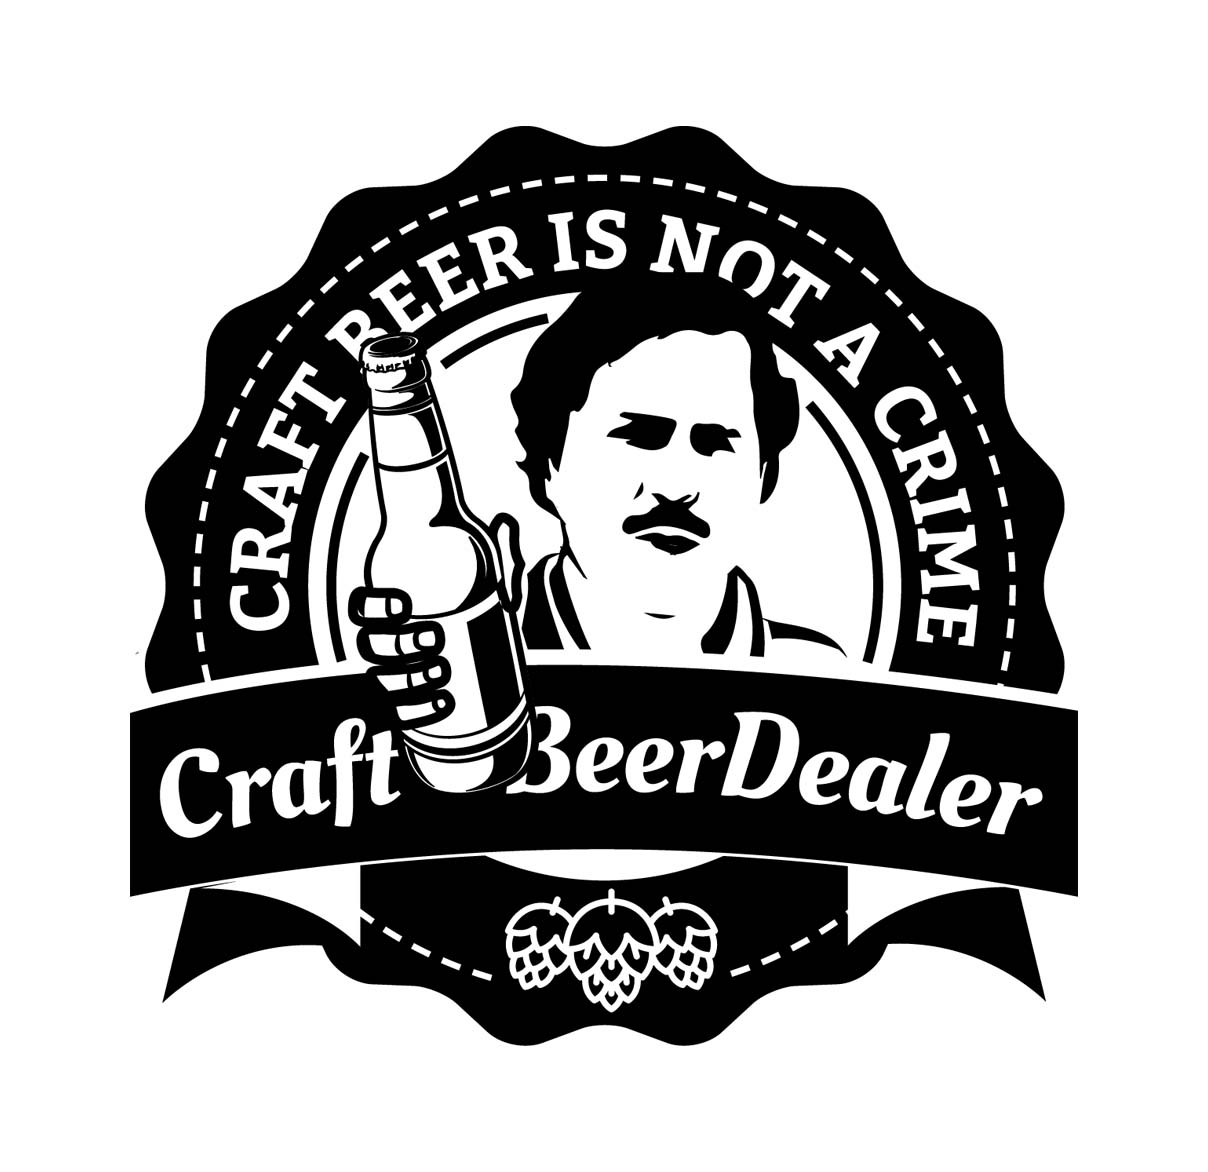 CraftBeer-Dealer.com